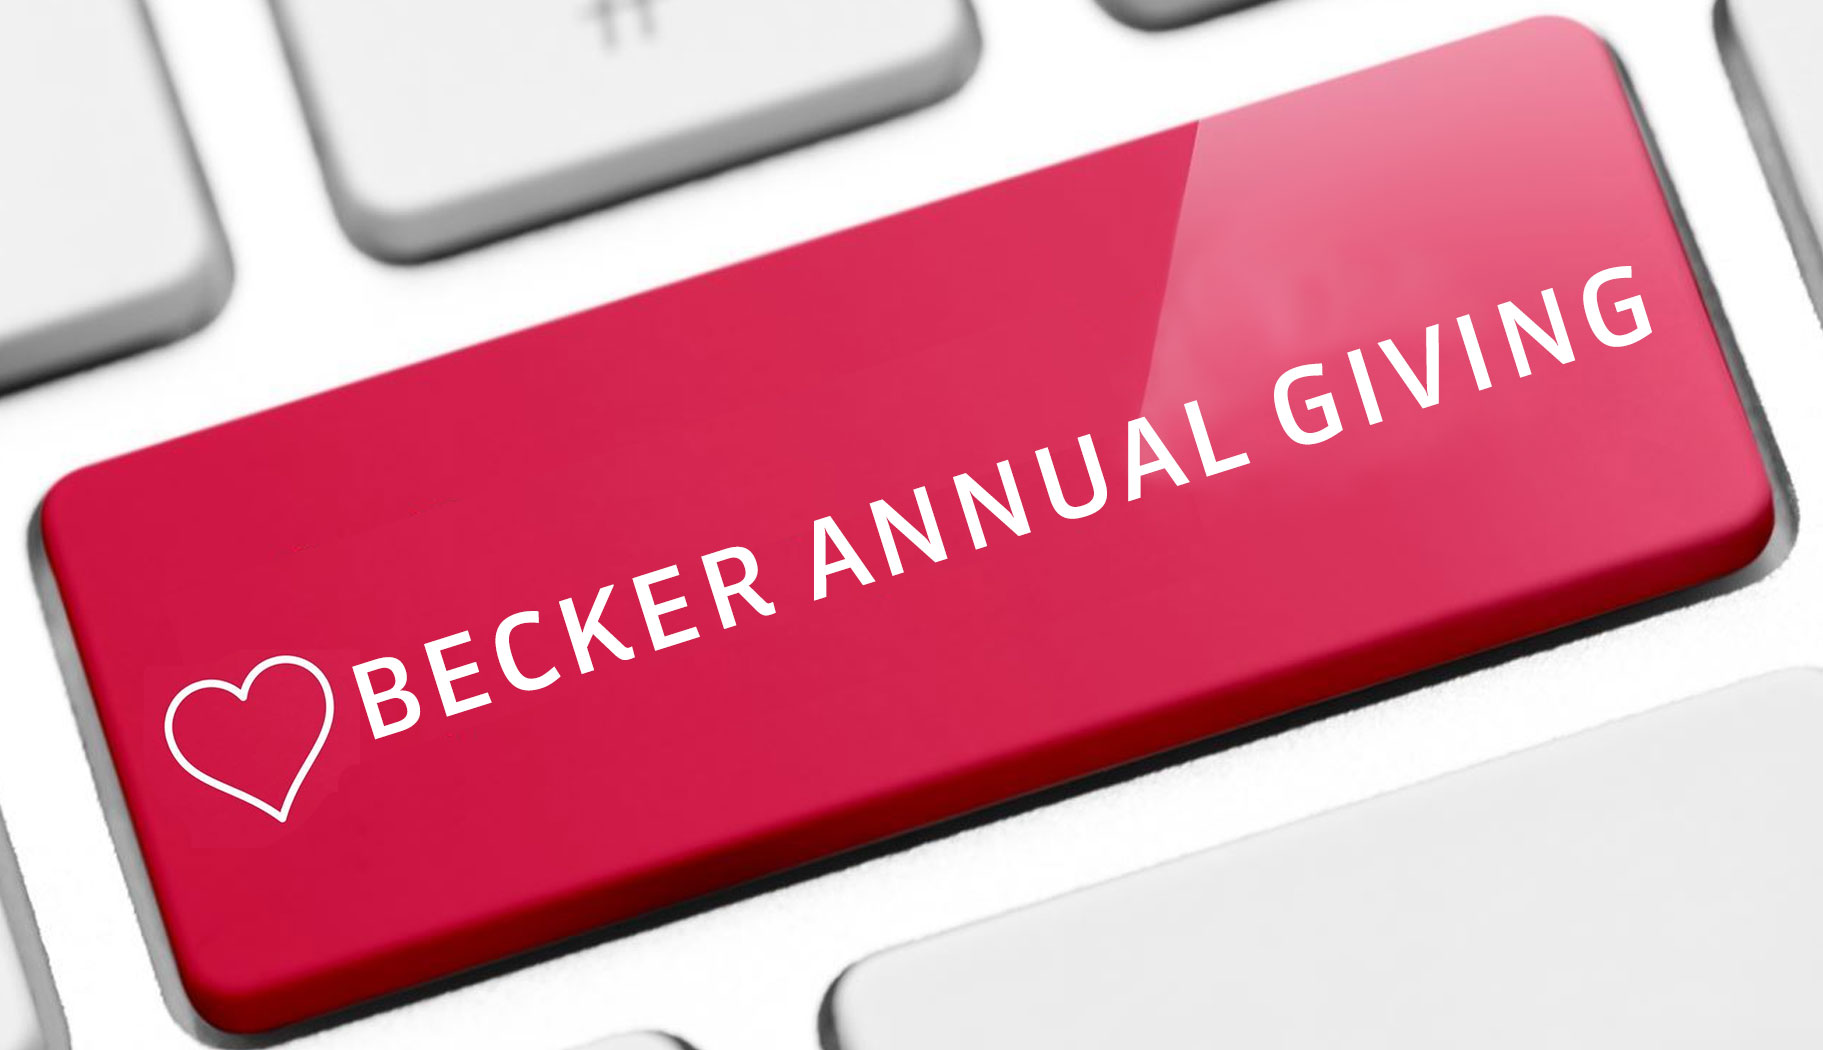 Becker Annual Giving